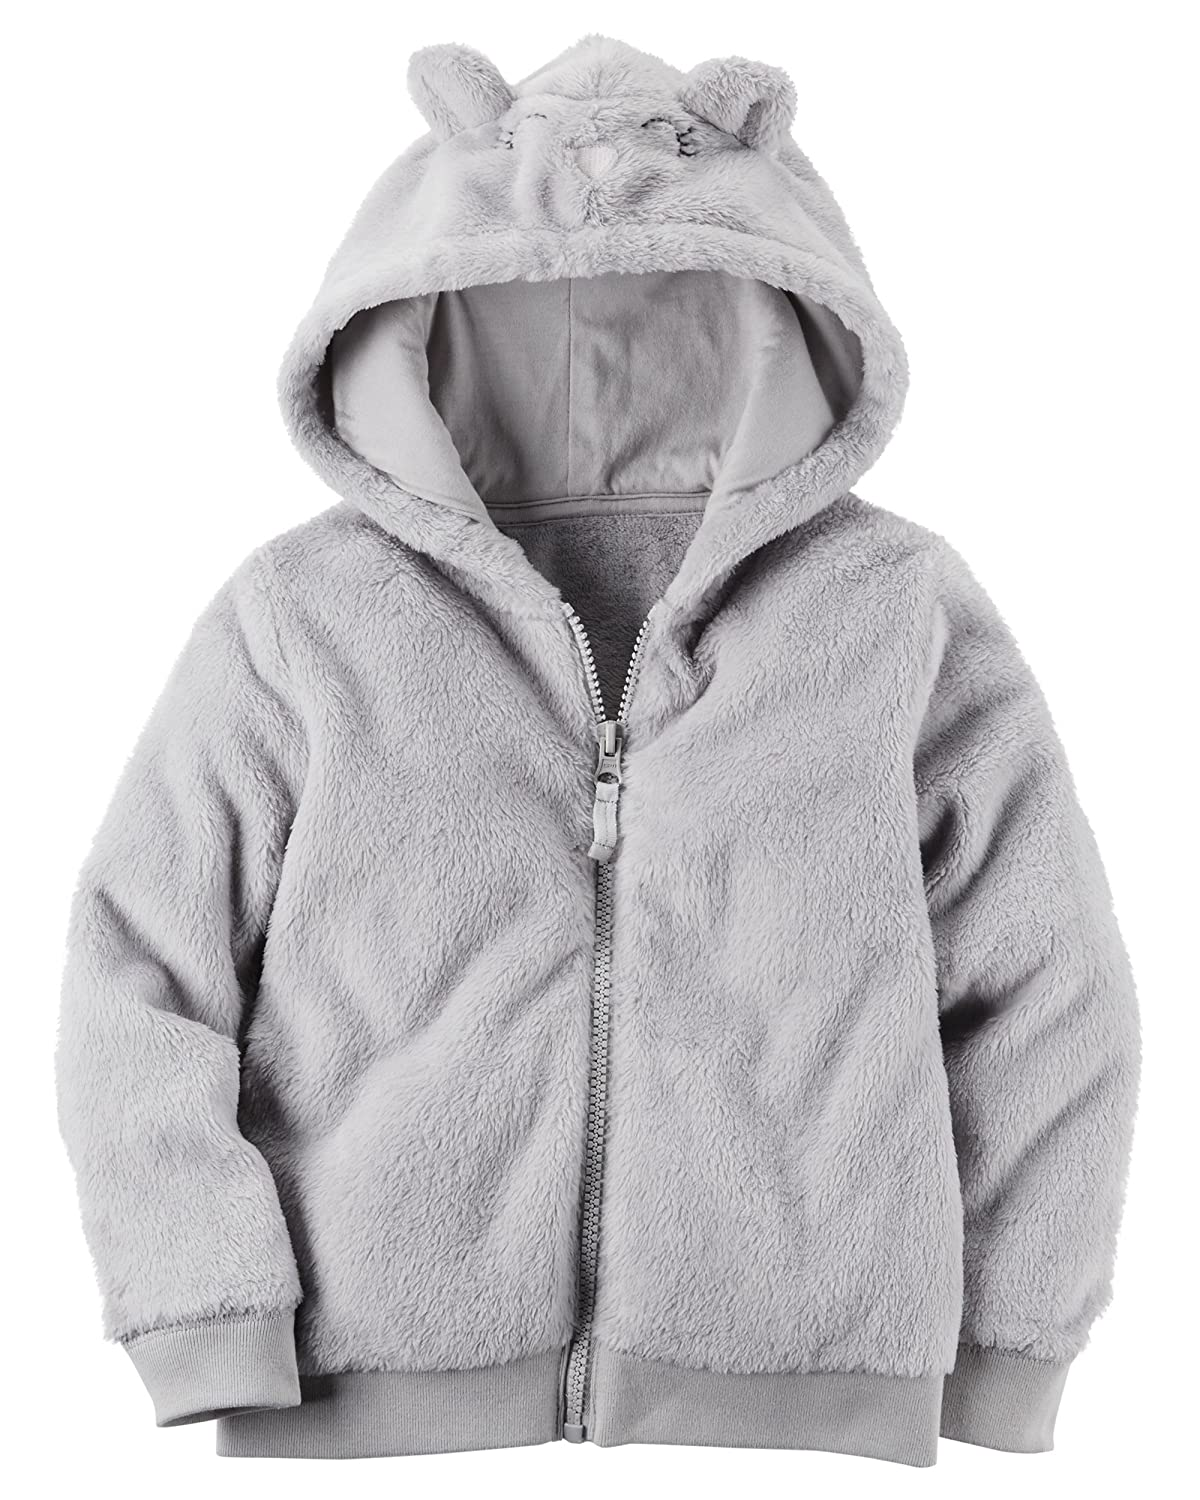 Carters Baby Girls Fuzzy Mouse Hoodie 3 Months Gray